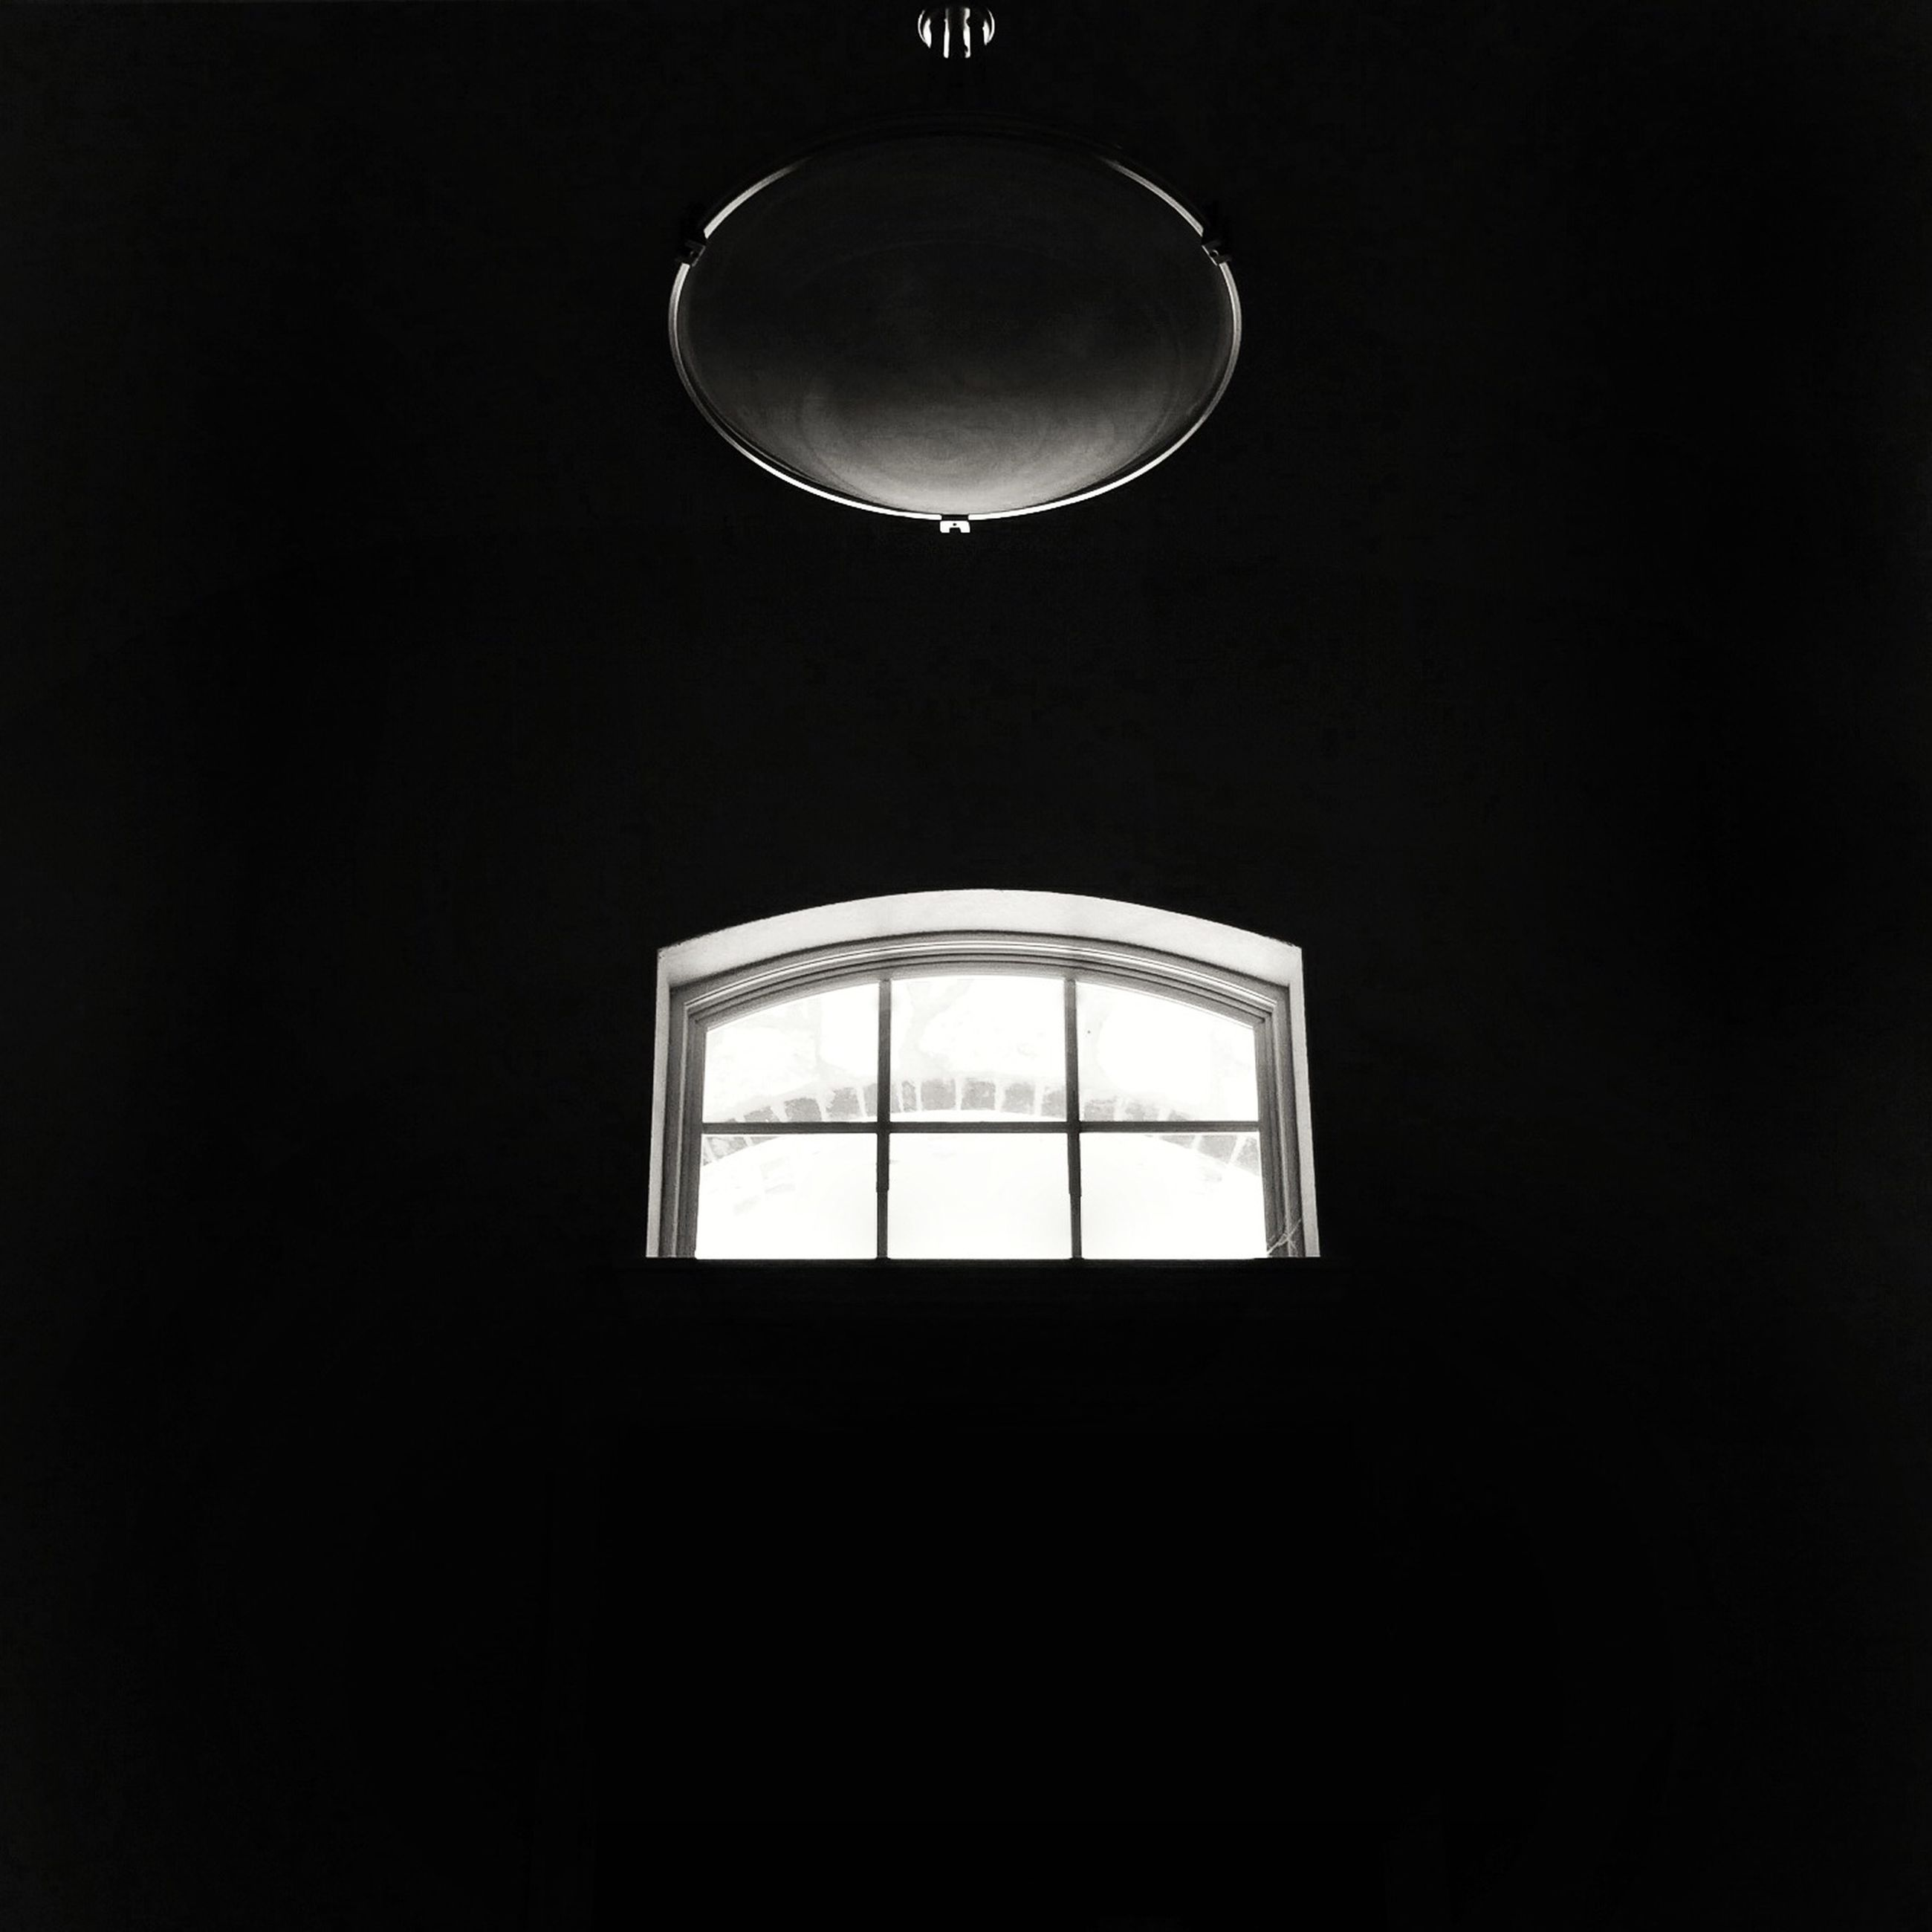 indoors, circle, copy space, glass - material, dark, illuminated, window, geometric shape, electricity, low angle view, transparent, lighting equipment, night, close-up, shape, built structure, architecture, no people, reflection, modern